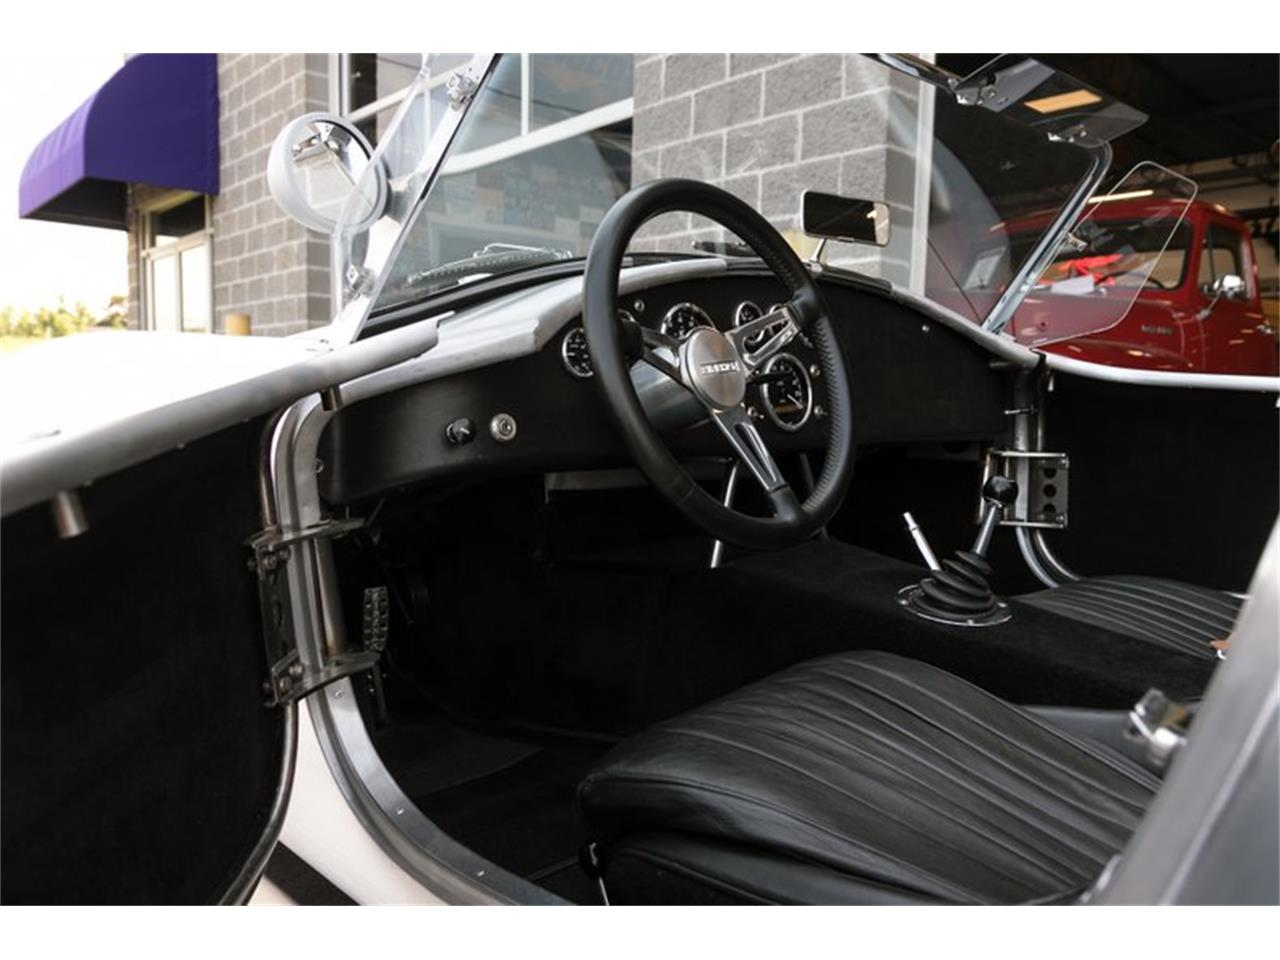 Large Picture of 1965 Cobra located in St. Charles Missouri - $179,995.00 - OAK6